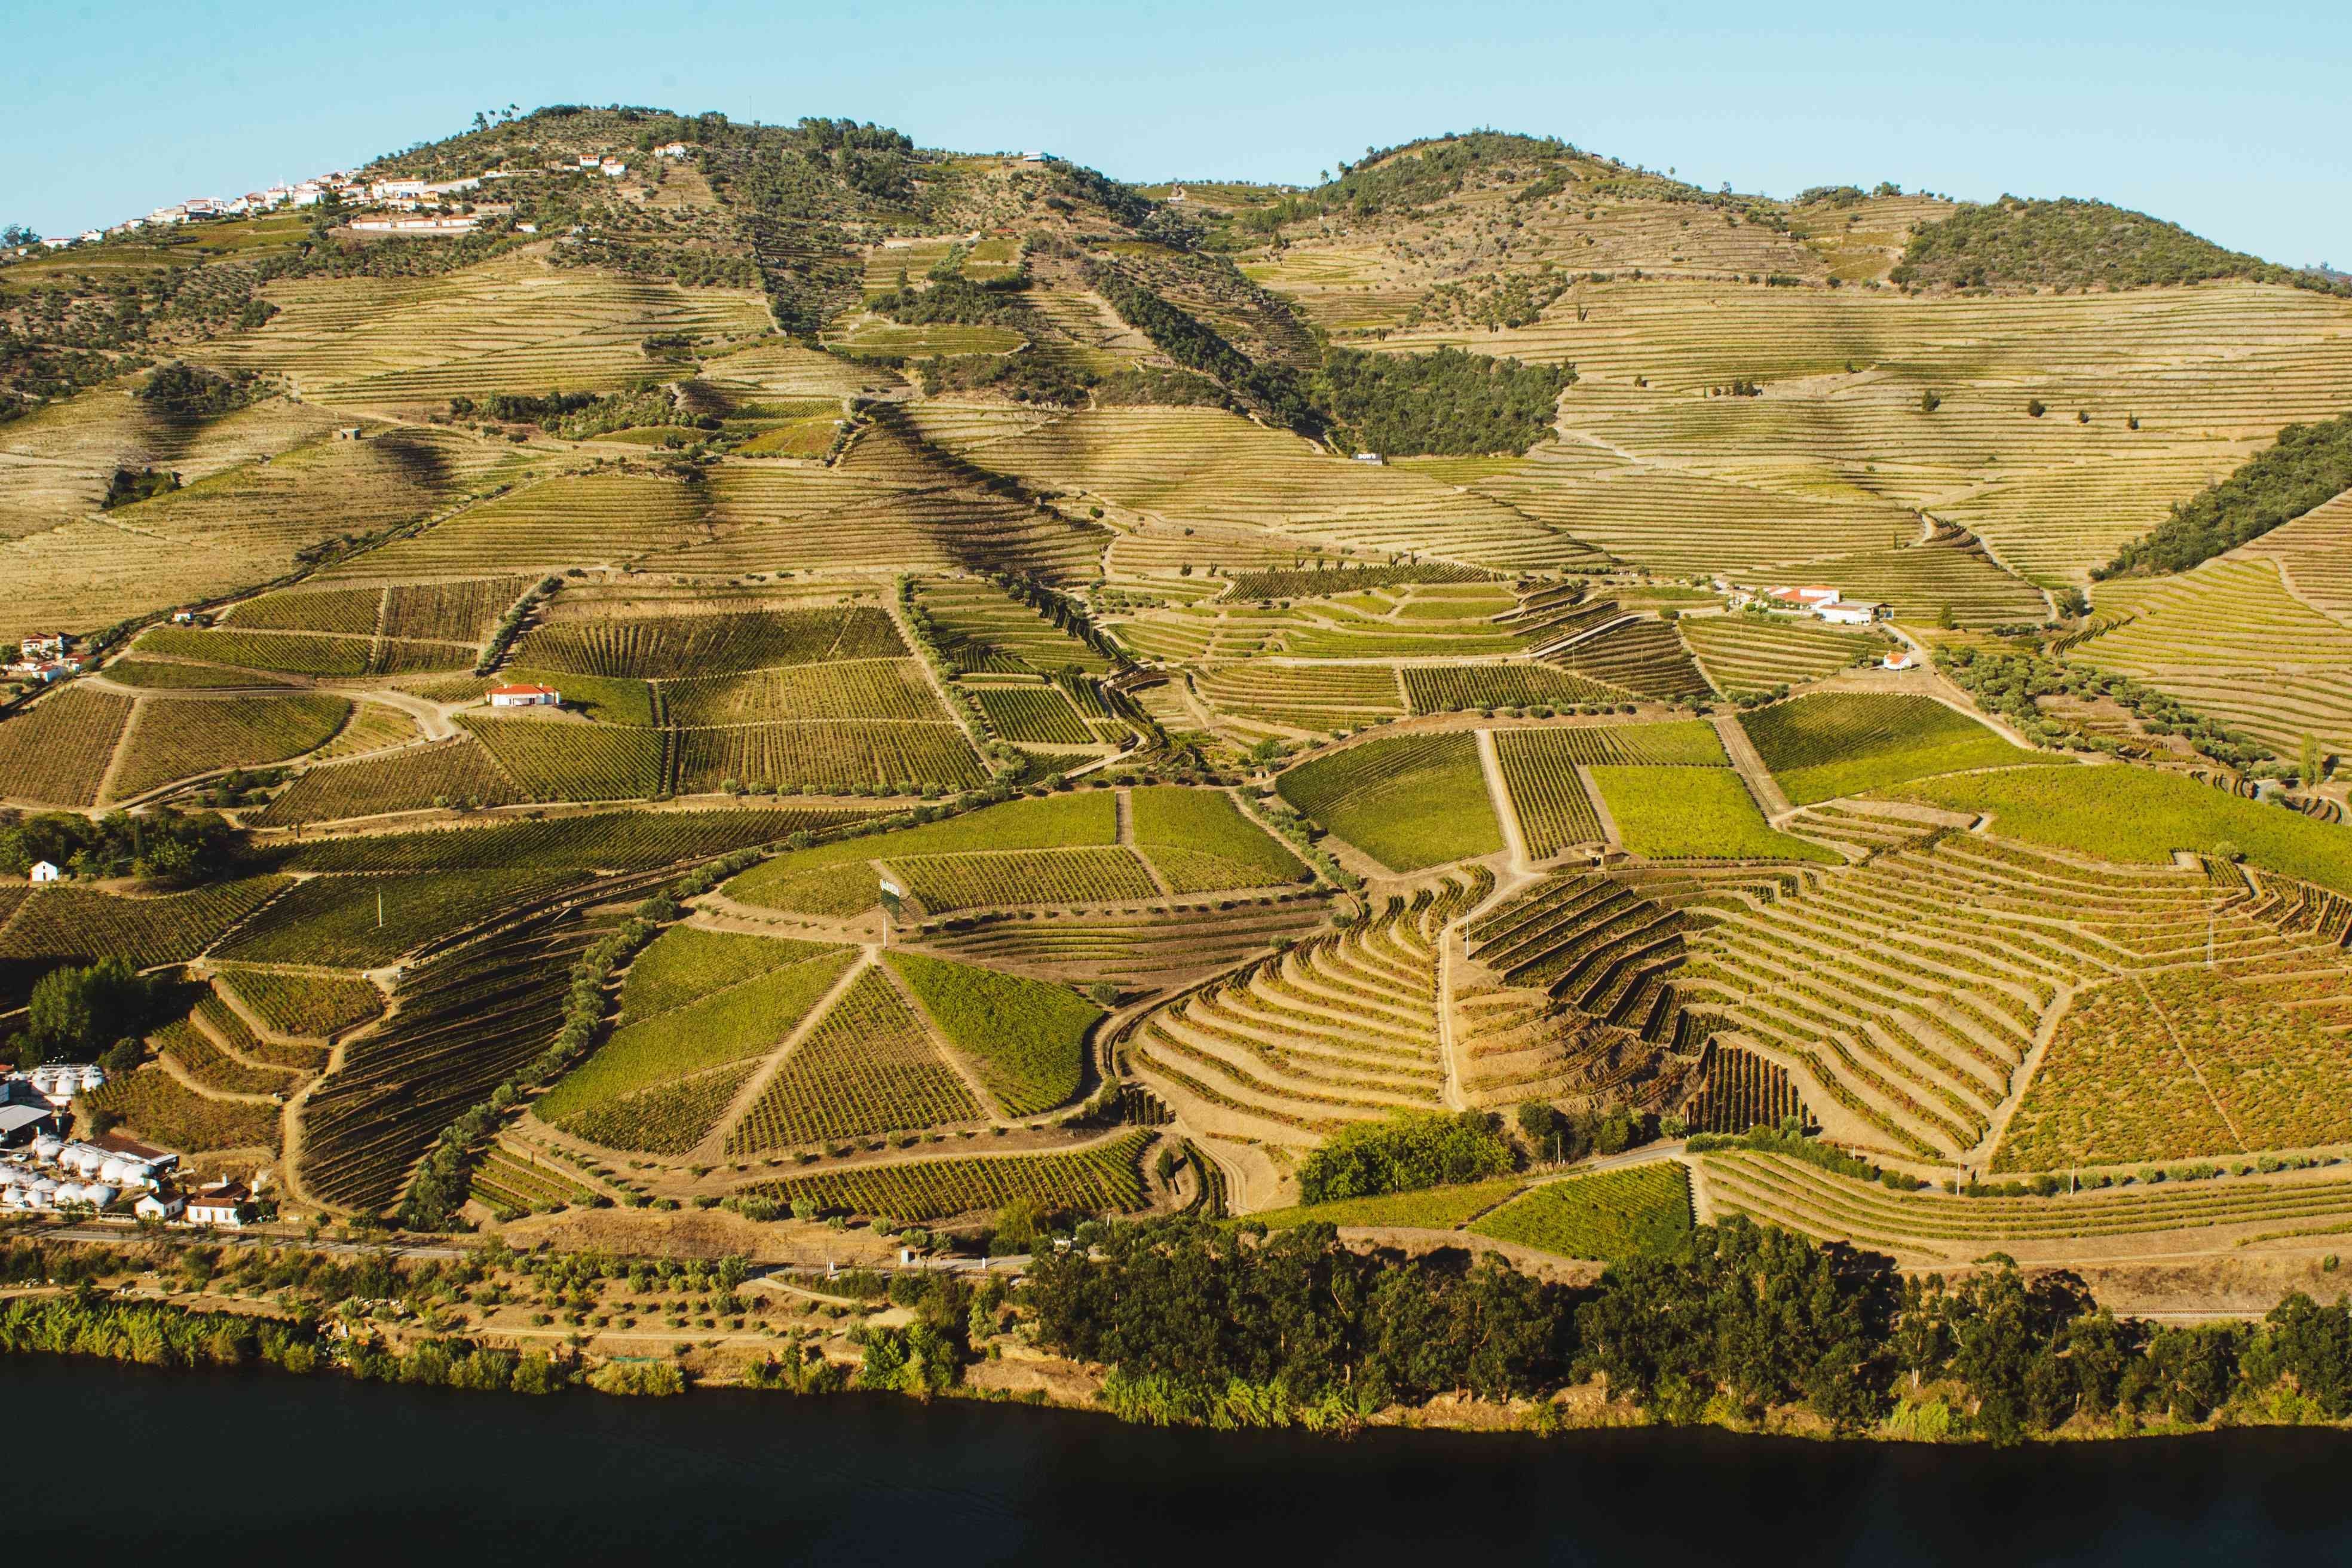 View of the rolling hills and vineyards in Douro Valley